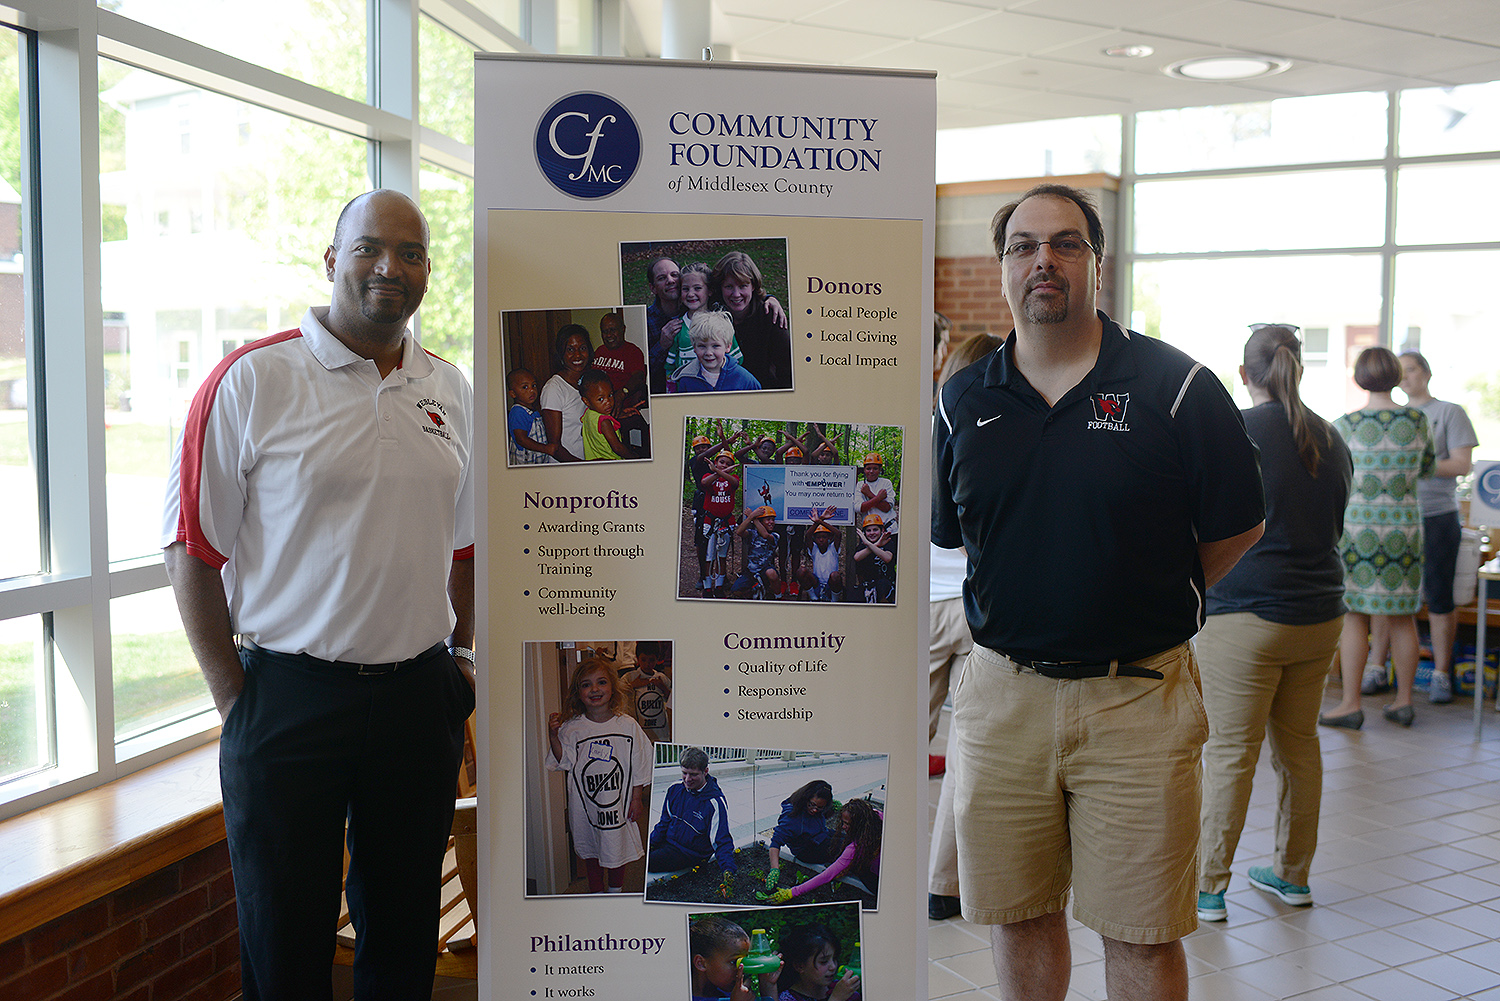 Frantz Williams (left) and Jeff McDonald hosted the event with CFMC in Freeman Athletic Center